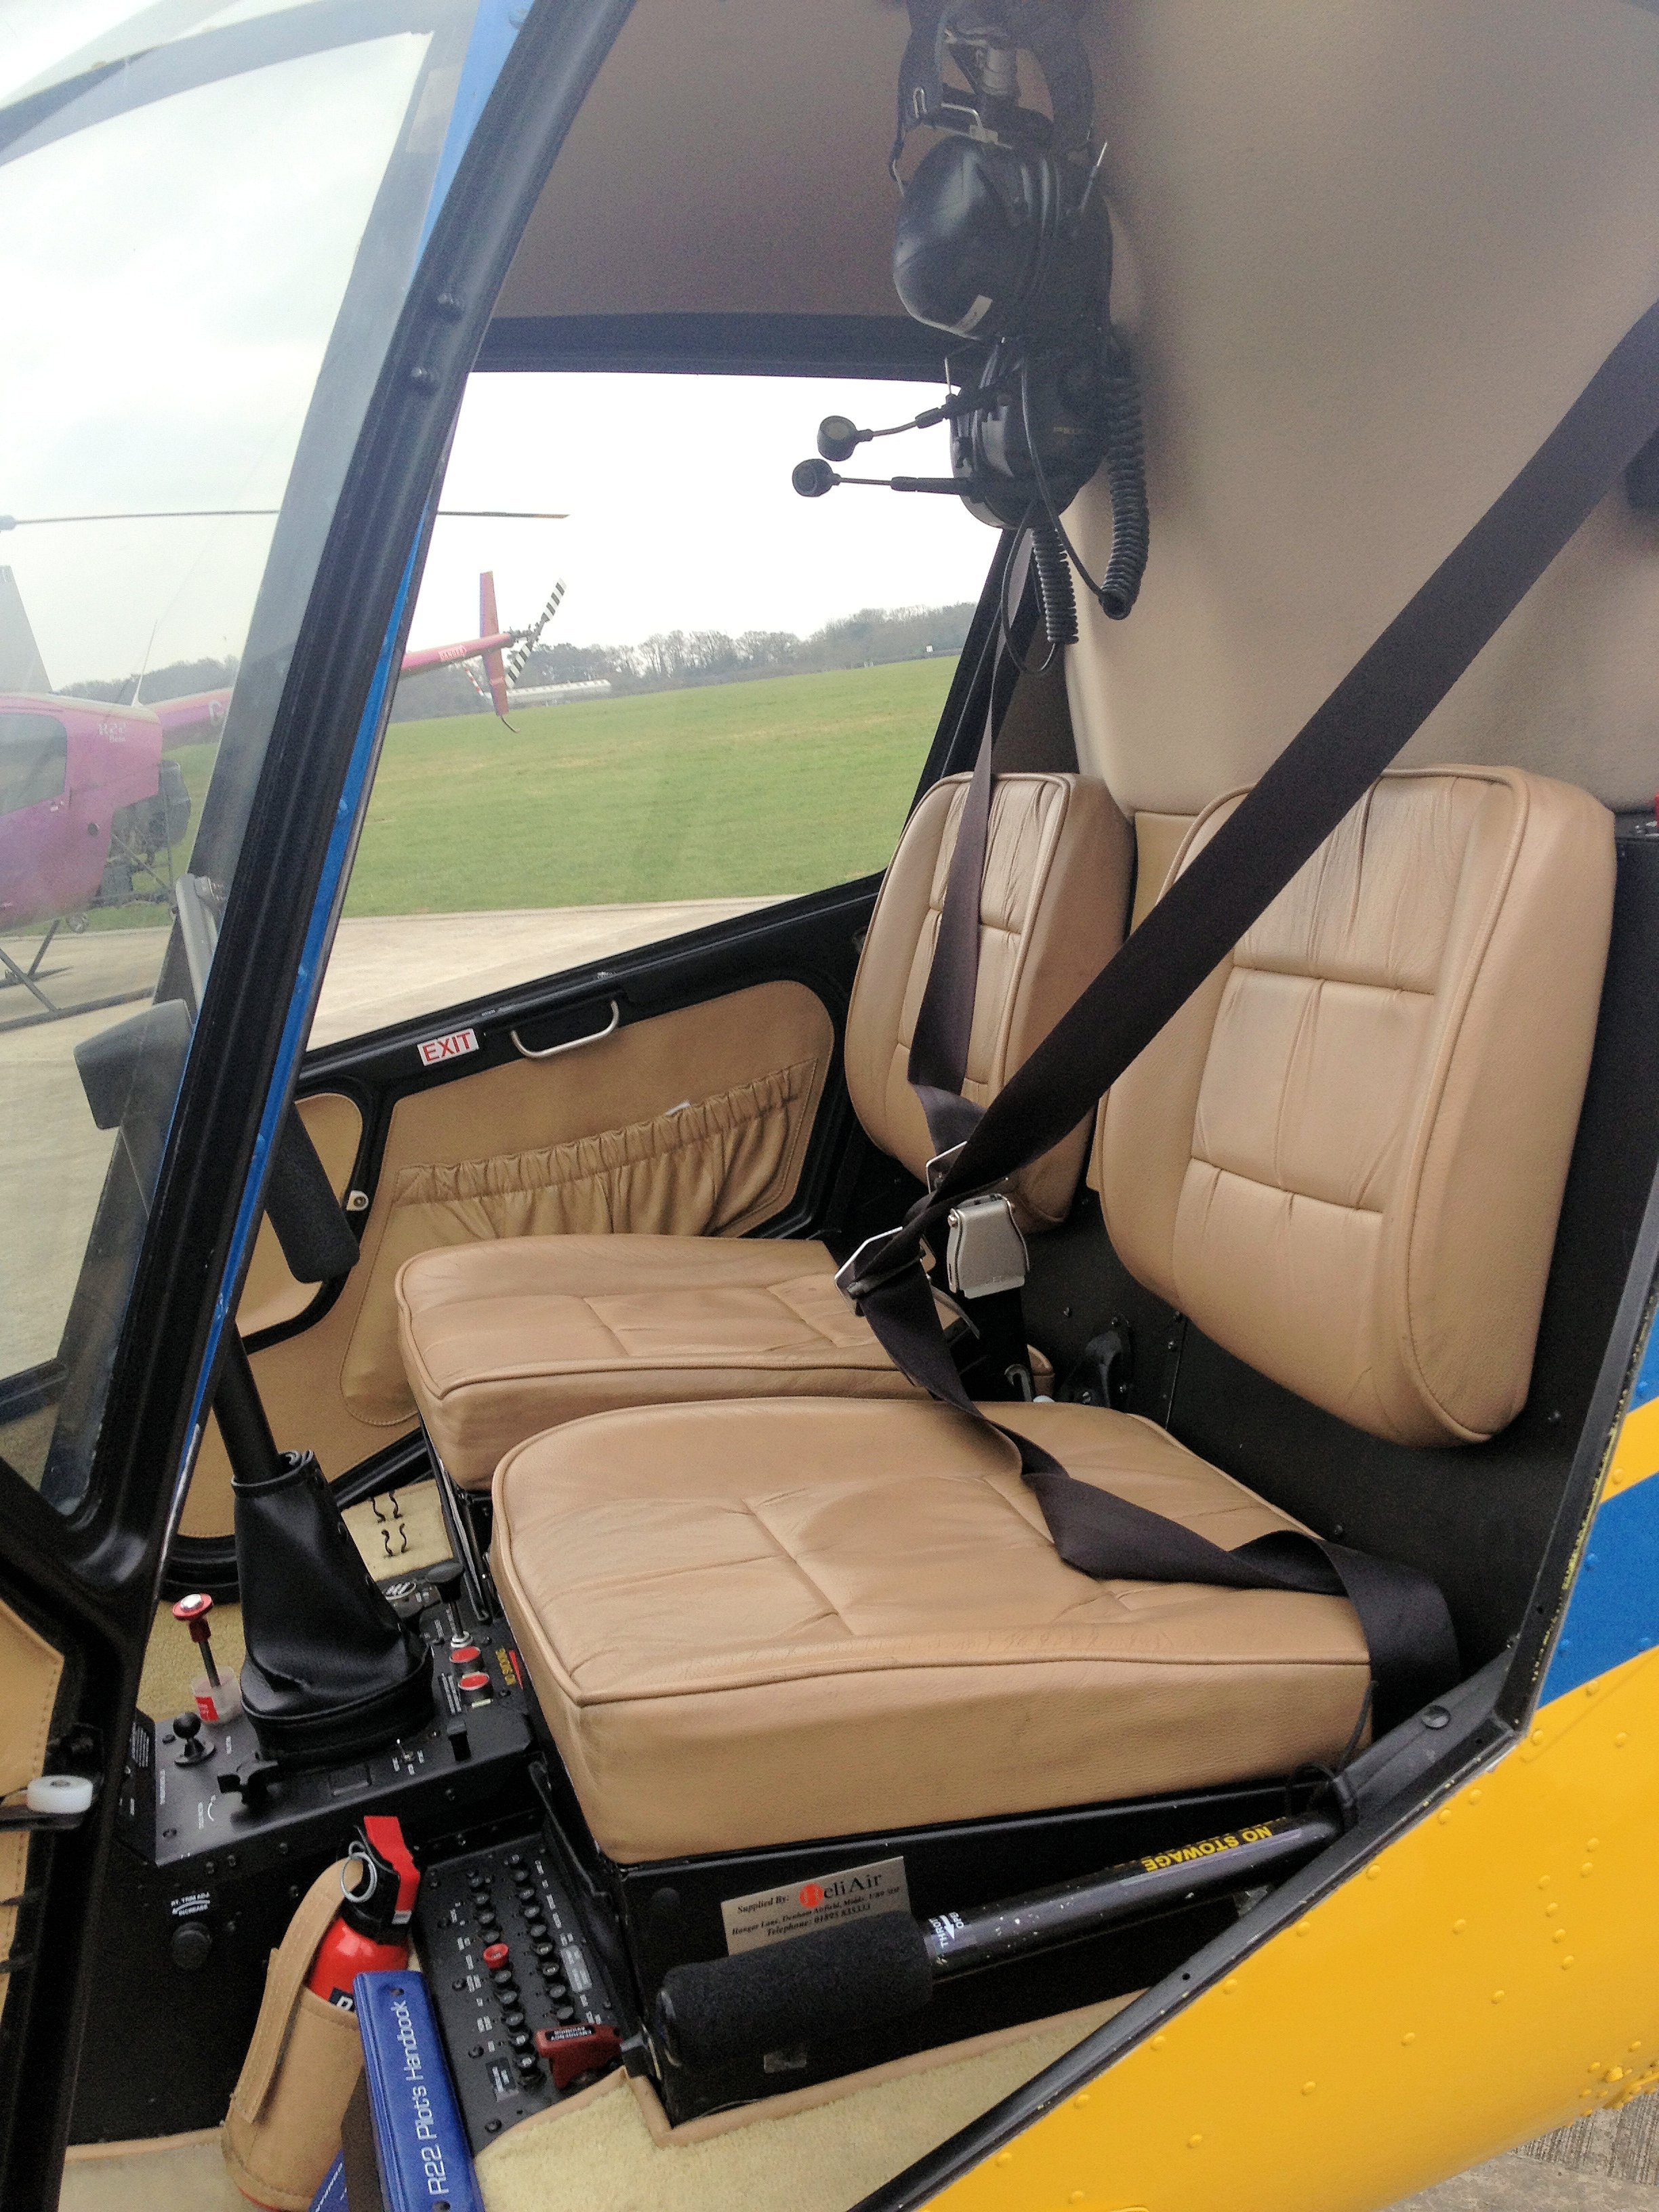 helicopter sales price with Used Robinson R22 Beta New 2014 Overhaul on What Is Fod besides Used Robinson R22 Beta New 2014 Overhaul as well H160 together with Vans Rv9 2006 in addition ArrowHawkHeliReplacementRCHelicopterPartsSet.